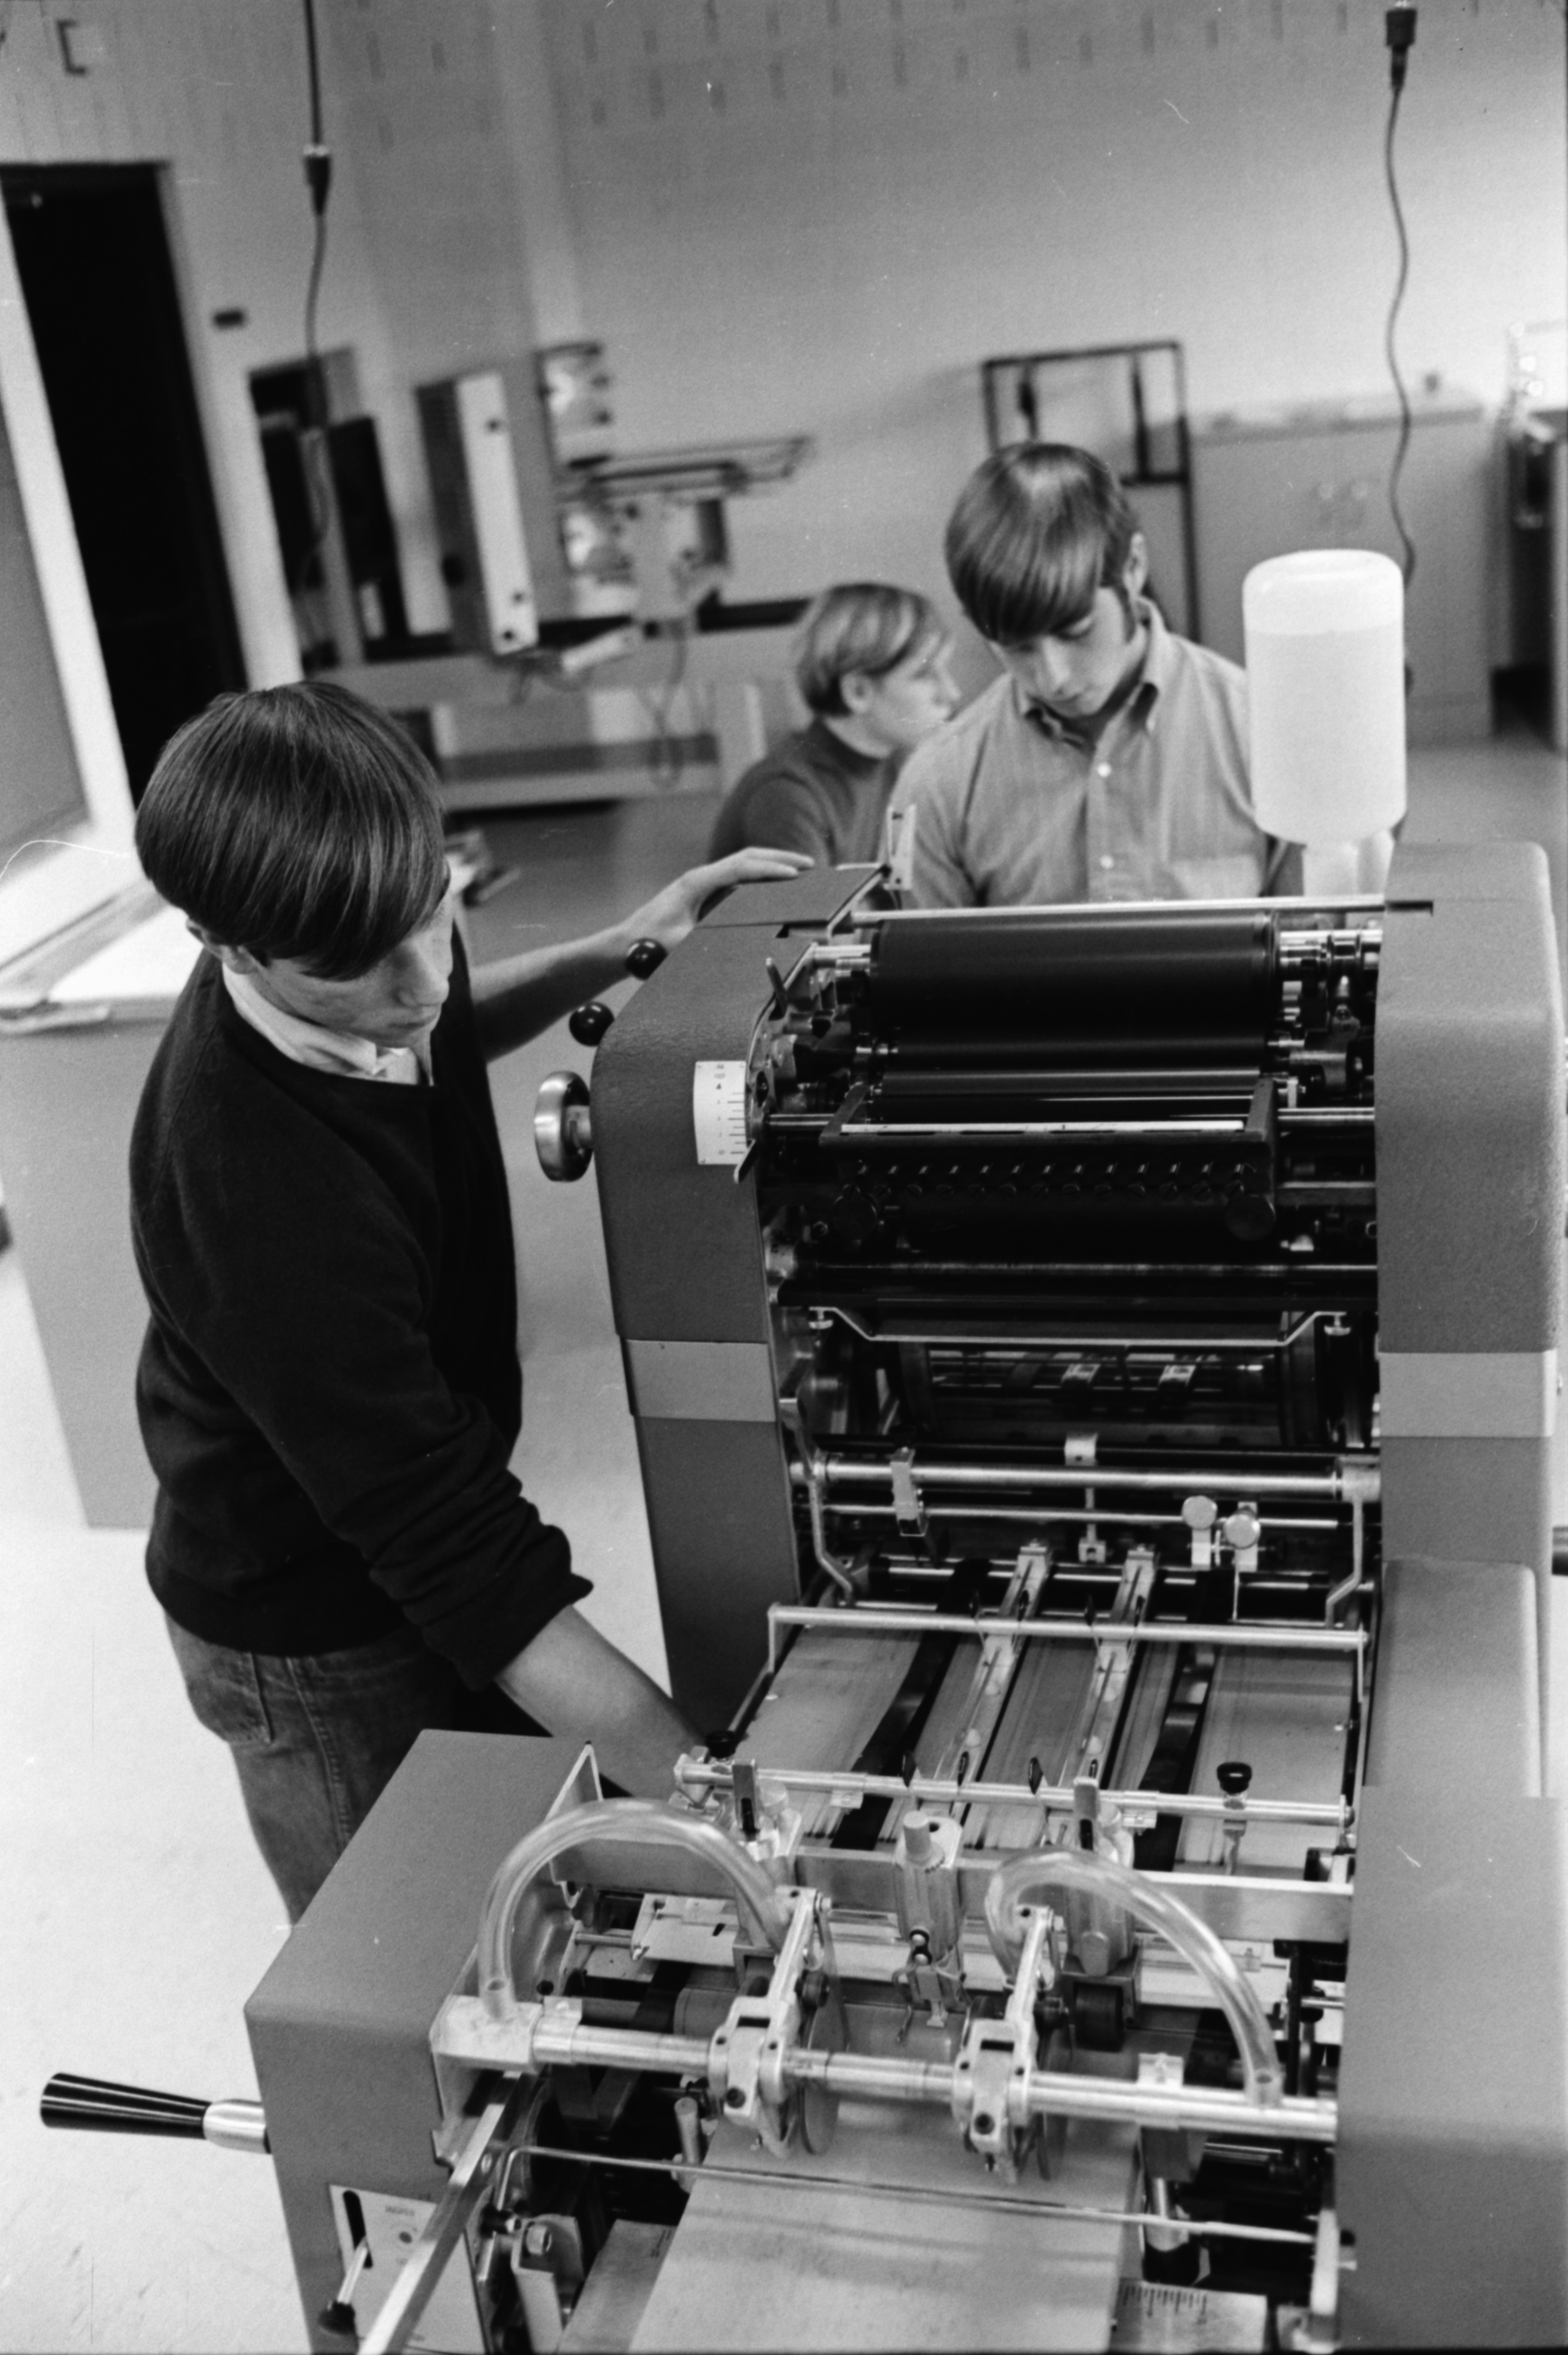 Mark Jewell and Scott Tremblay Trying Out New Print Machines at Huron High School, November 1969 image